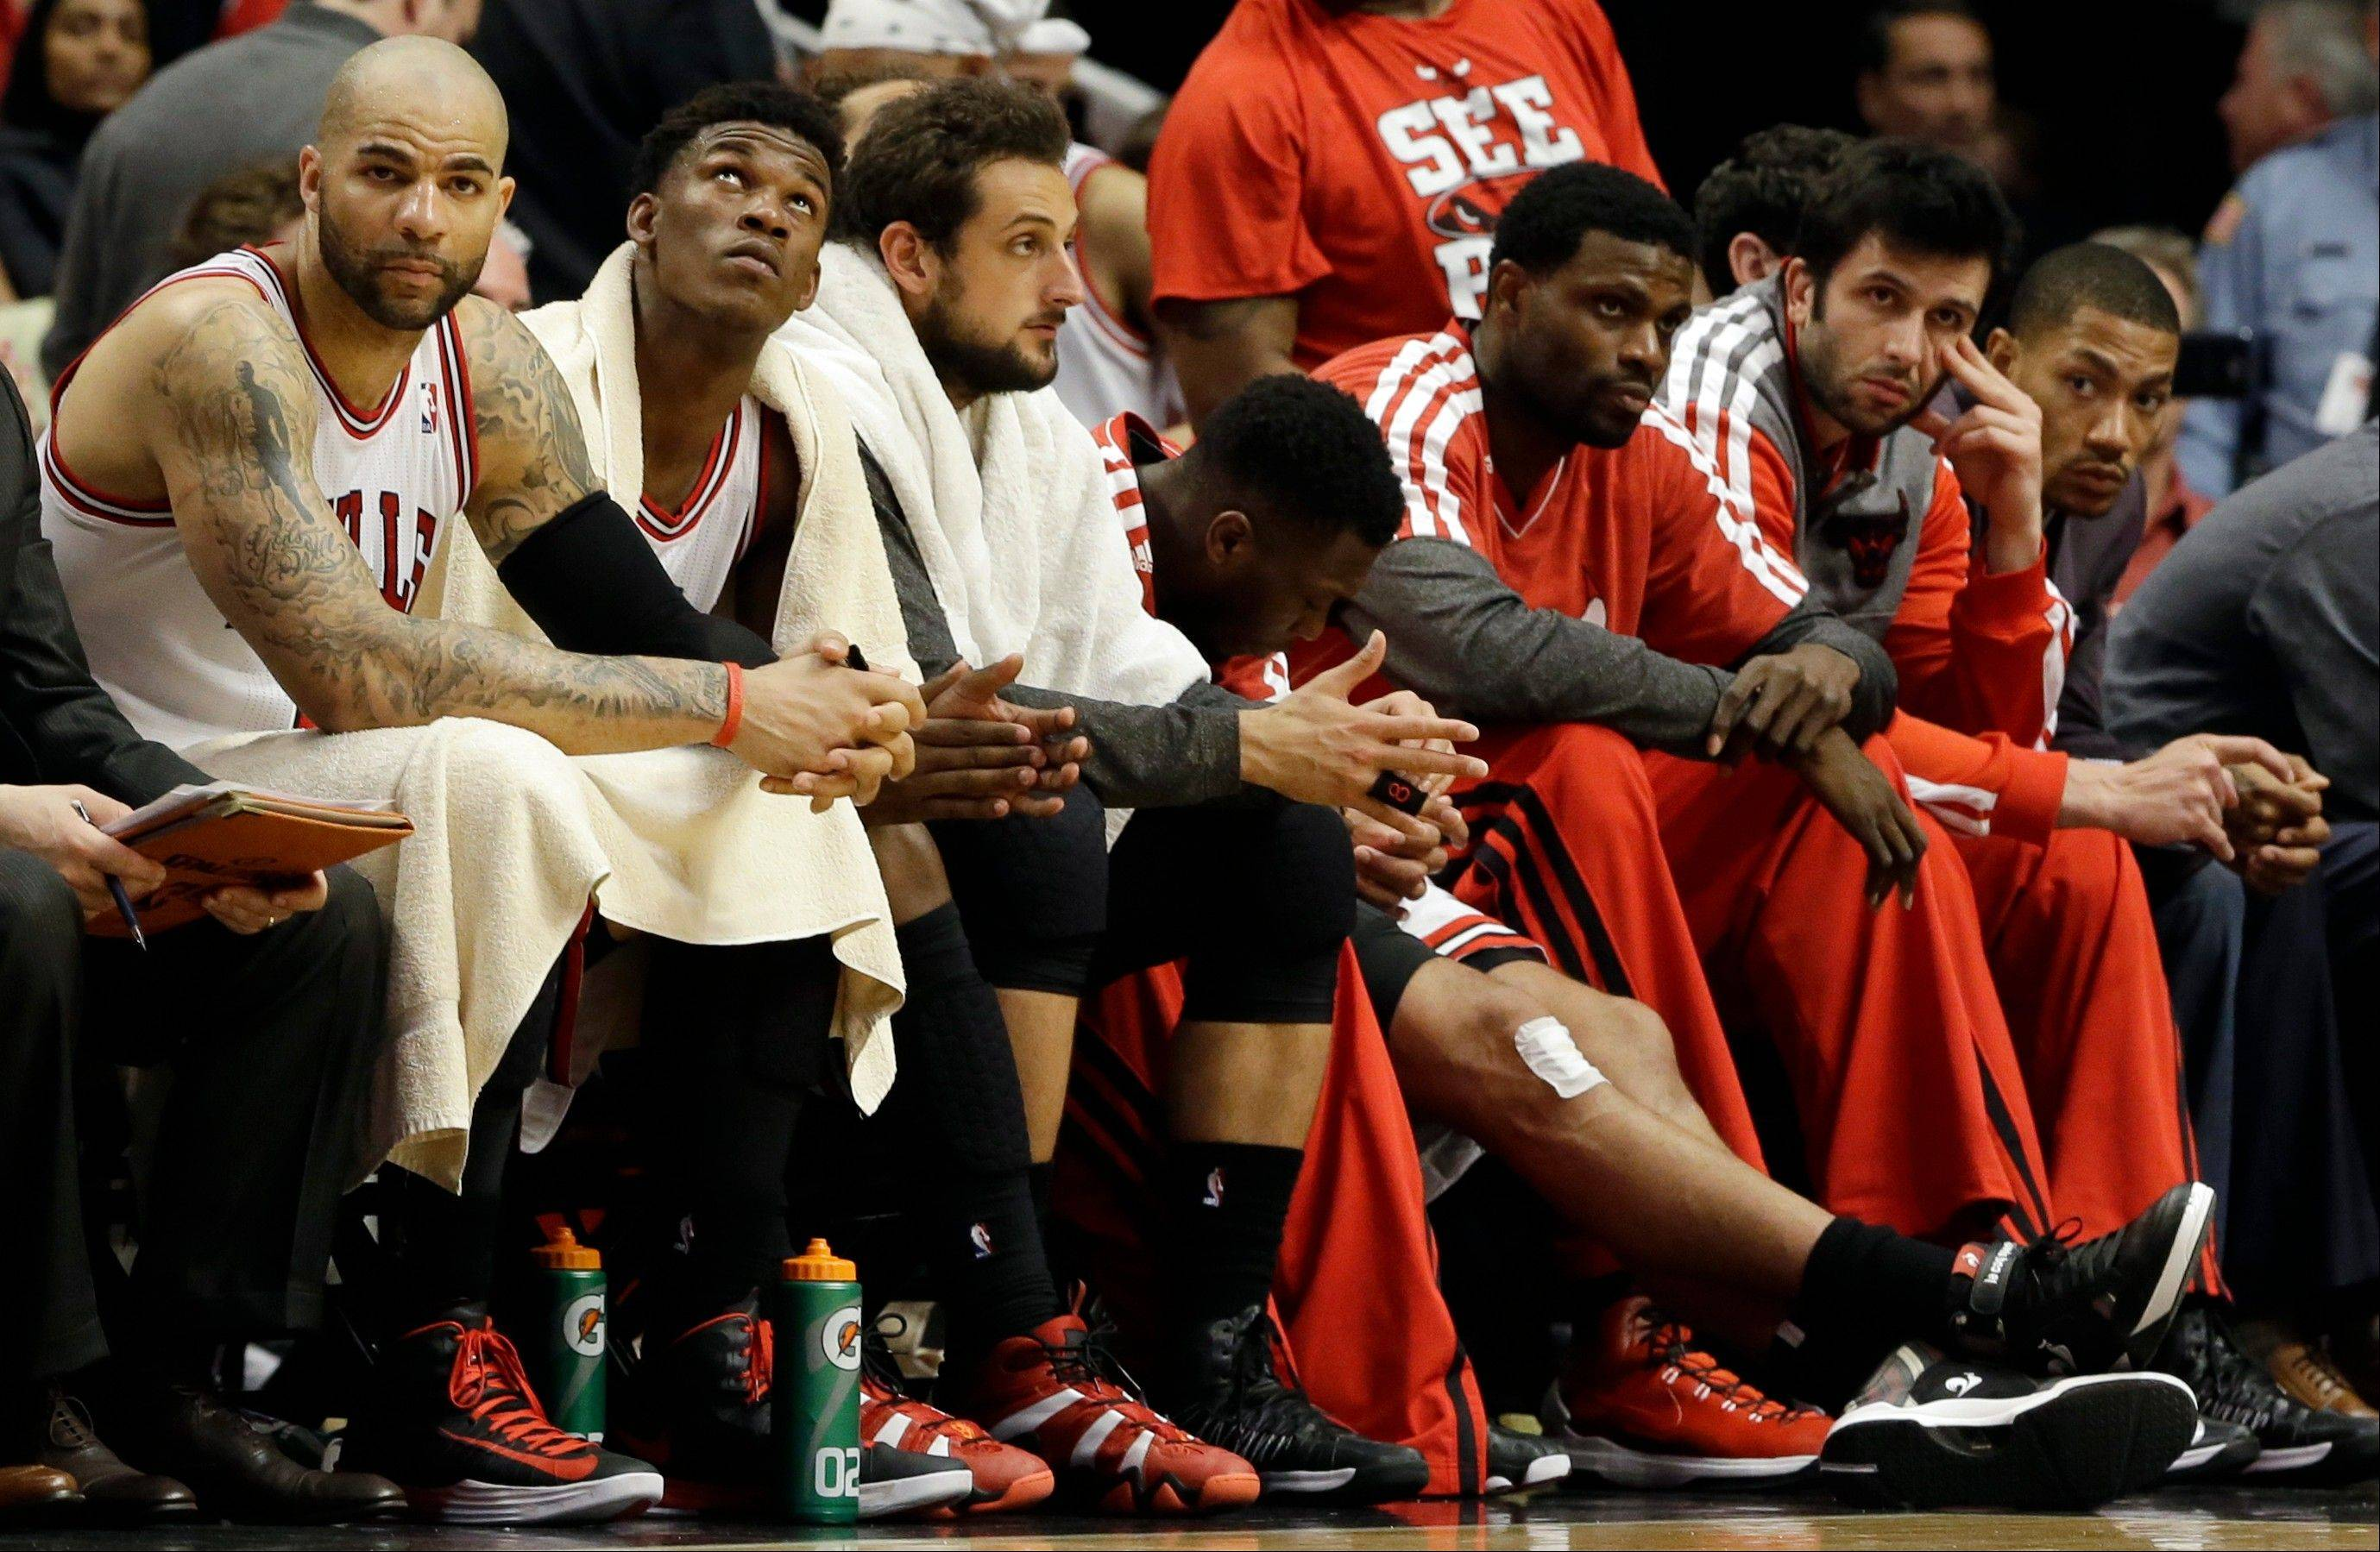 The Bulls bench watches the Miami Heat surge during the second half of Game 4 of an NBA basketball playoffs Eastern Conference semifinal against the Miami Heat on Monday, May 13, 2013, in Chicago. The Heat won 88-65.